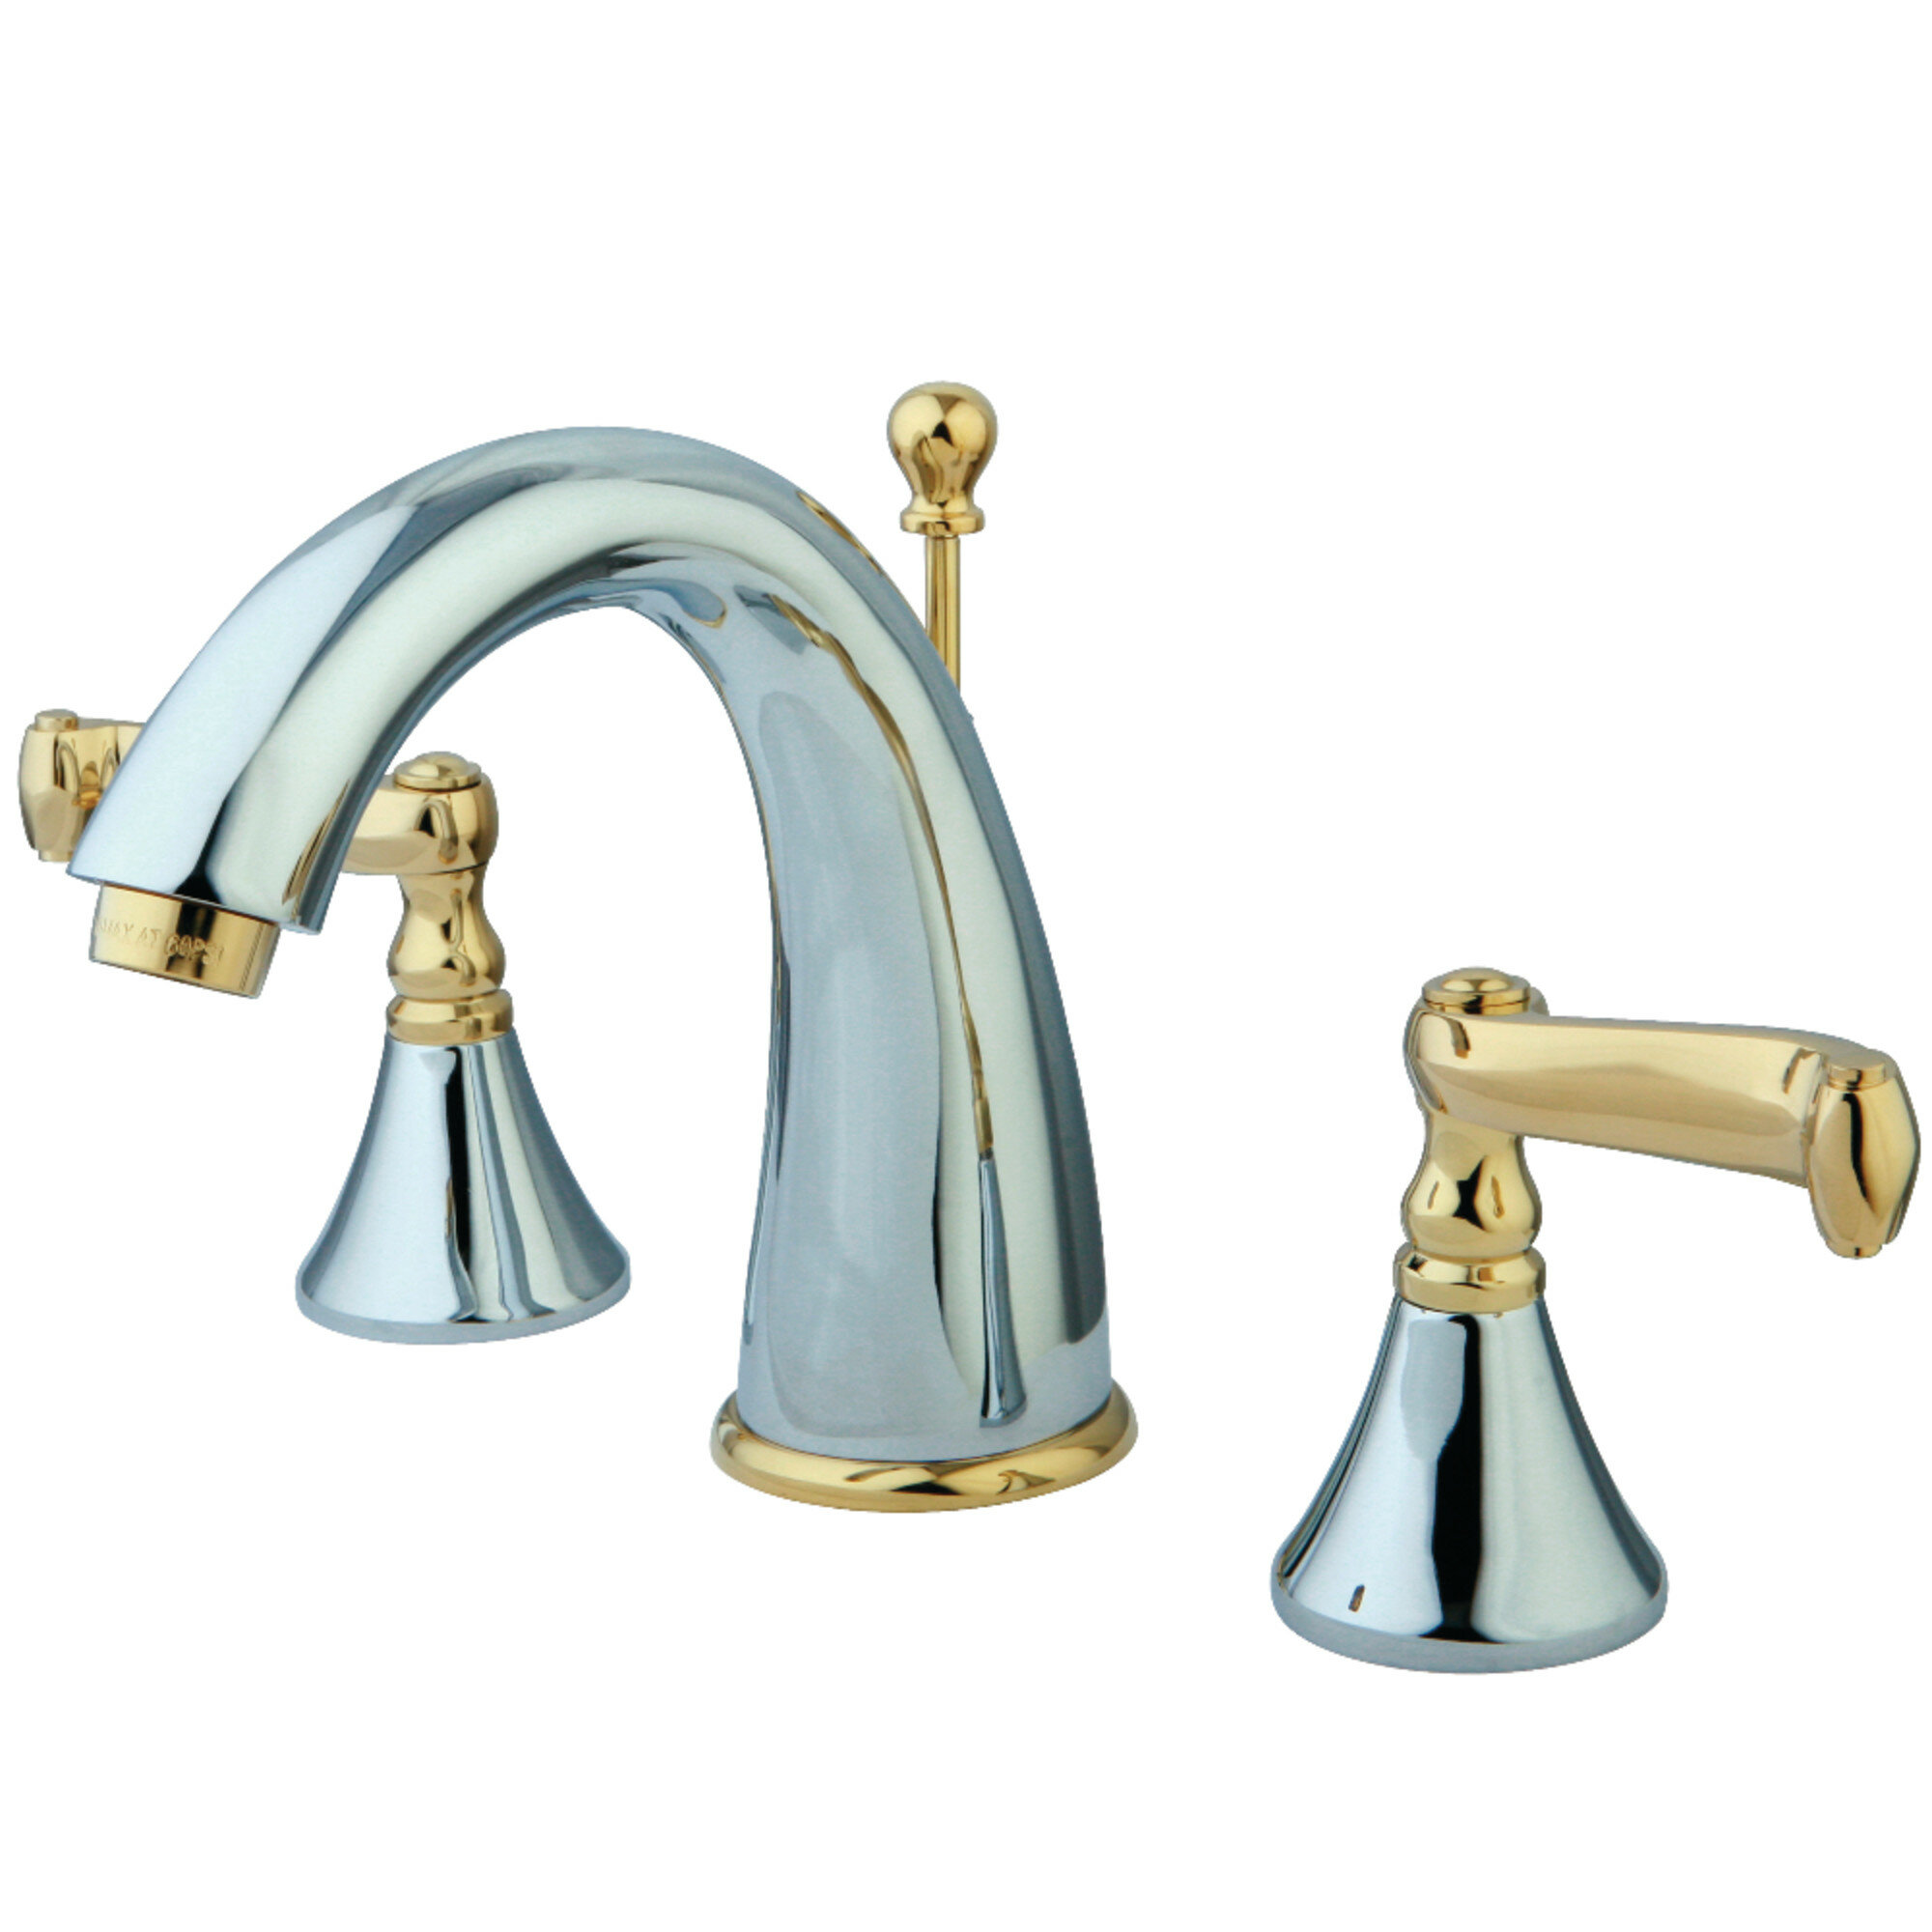 Kingston Brass Royale Widespread Bathroom Faucet With Drain Assembly Wayfair